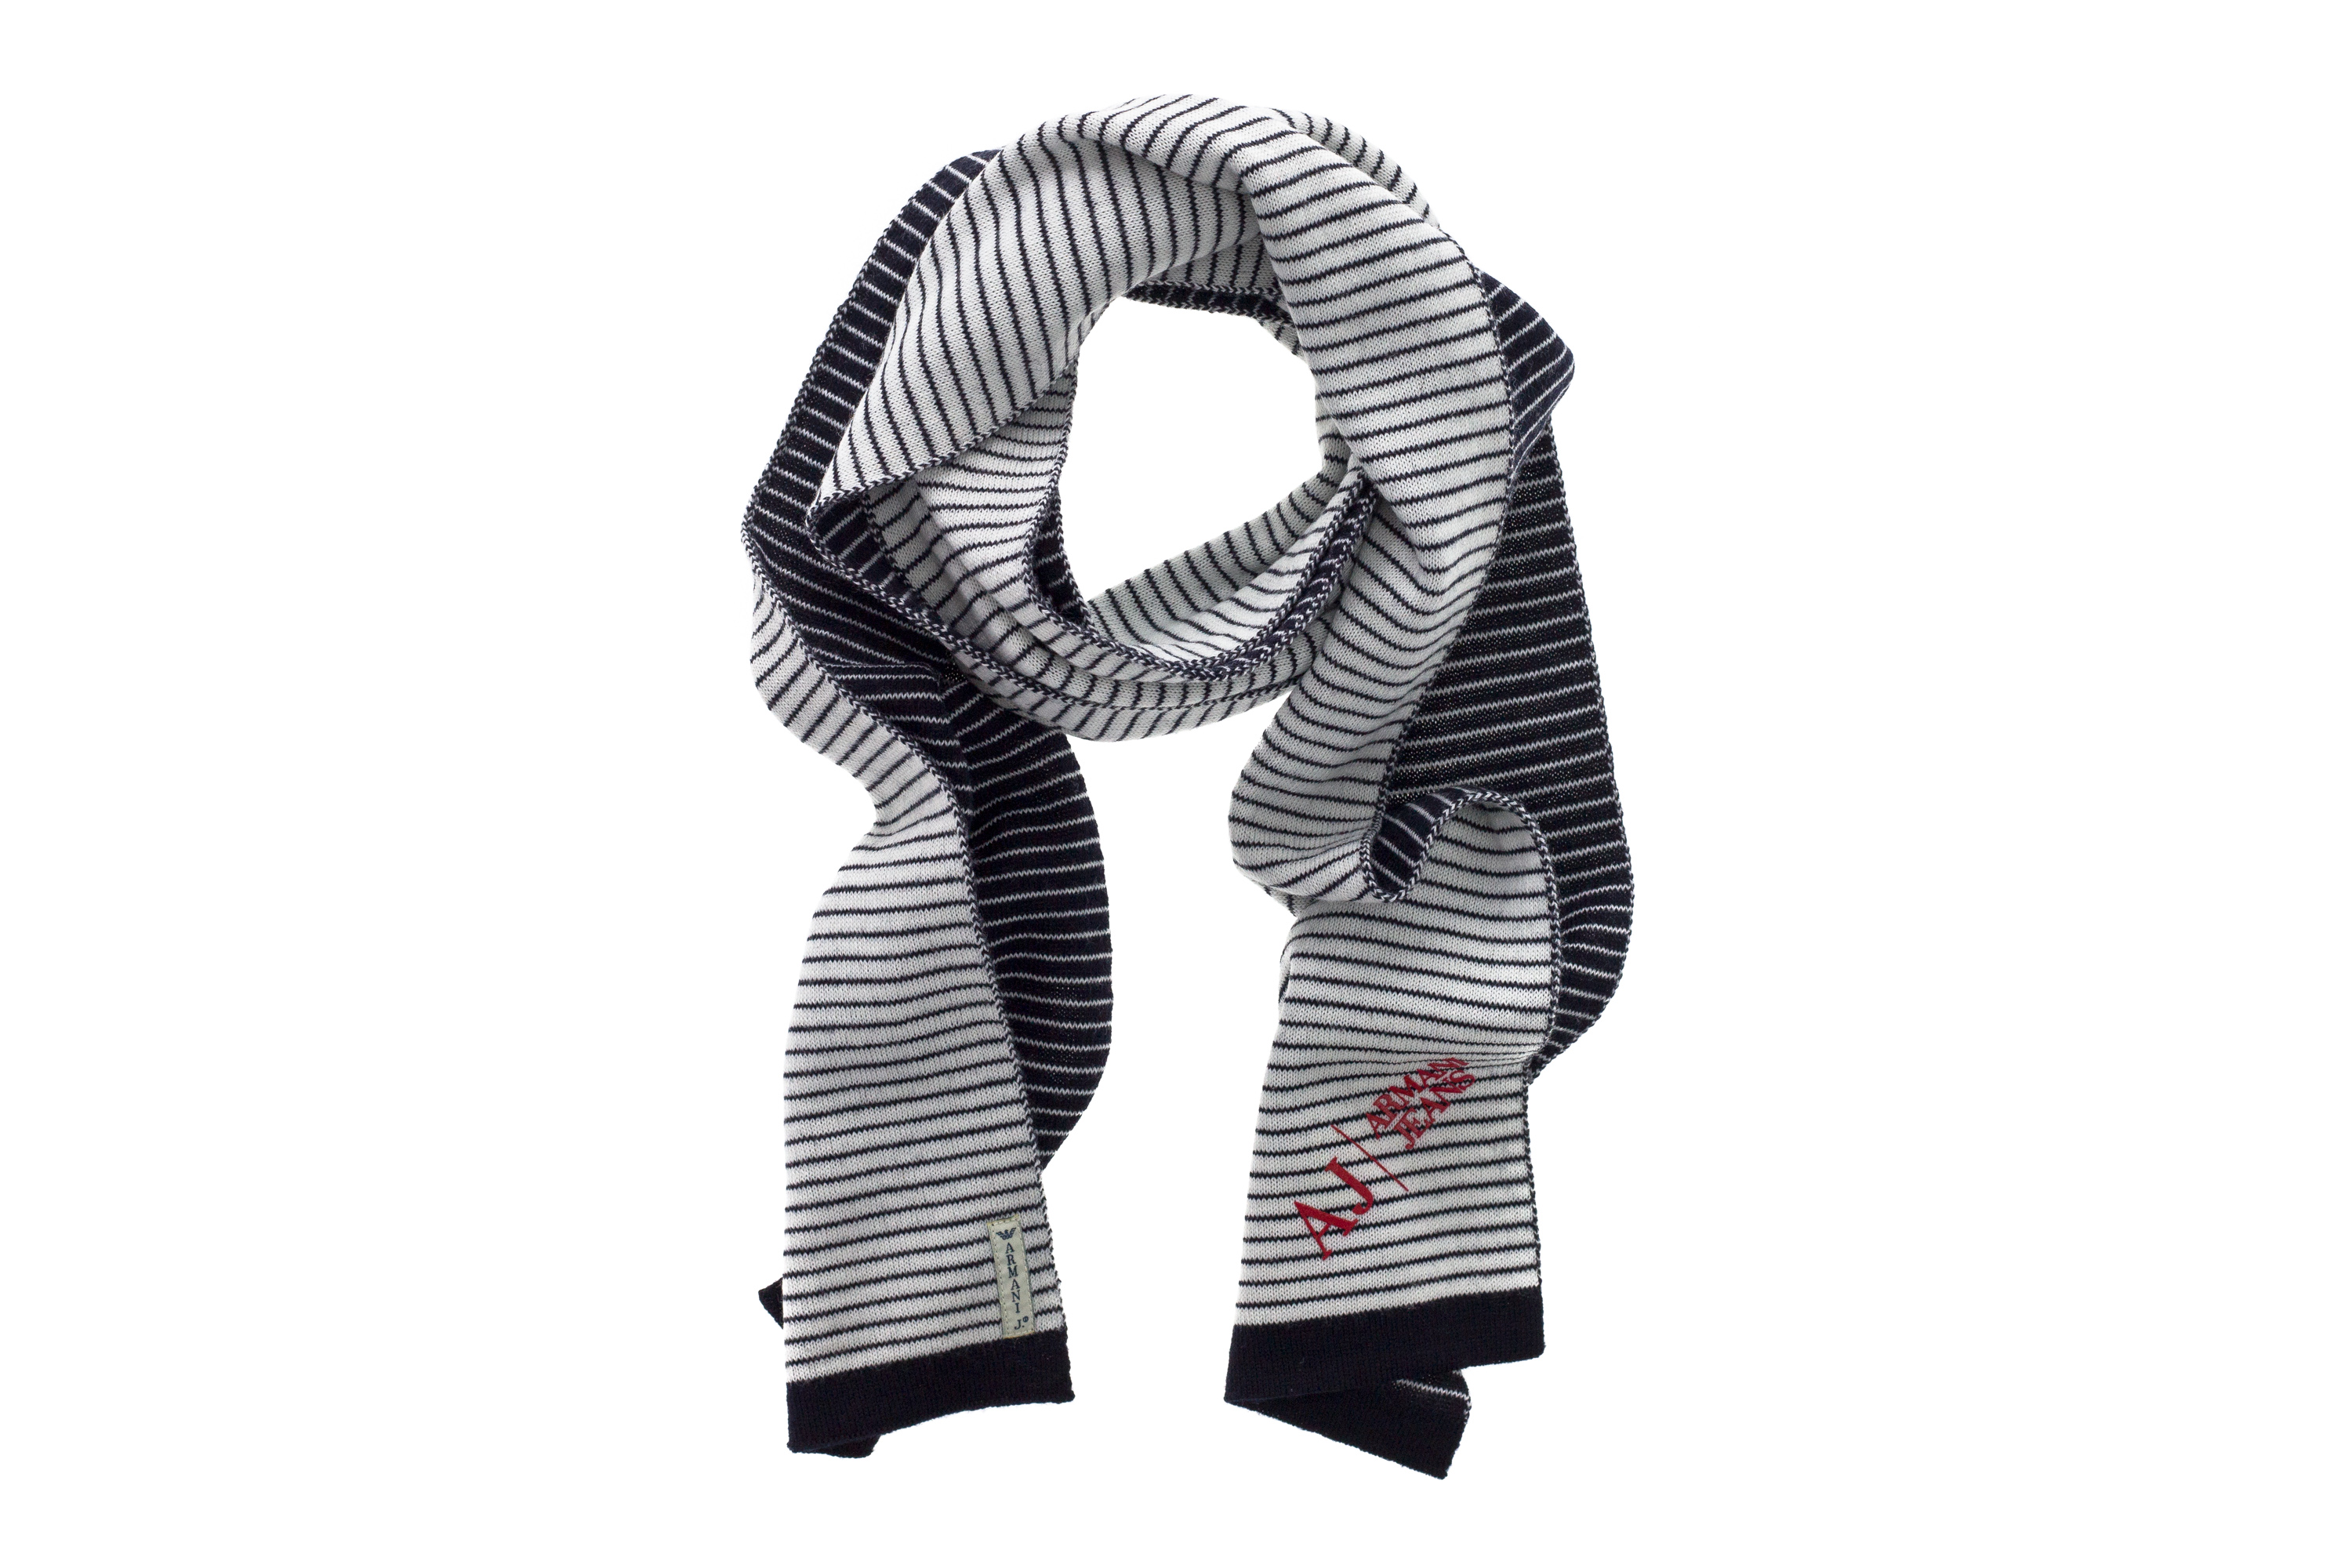 92730b6d5a Details about ARMANI JEANS Men Wool Blend Scarf Black White Stripes Red  Logo MADE IN ITALY